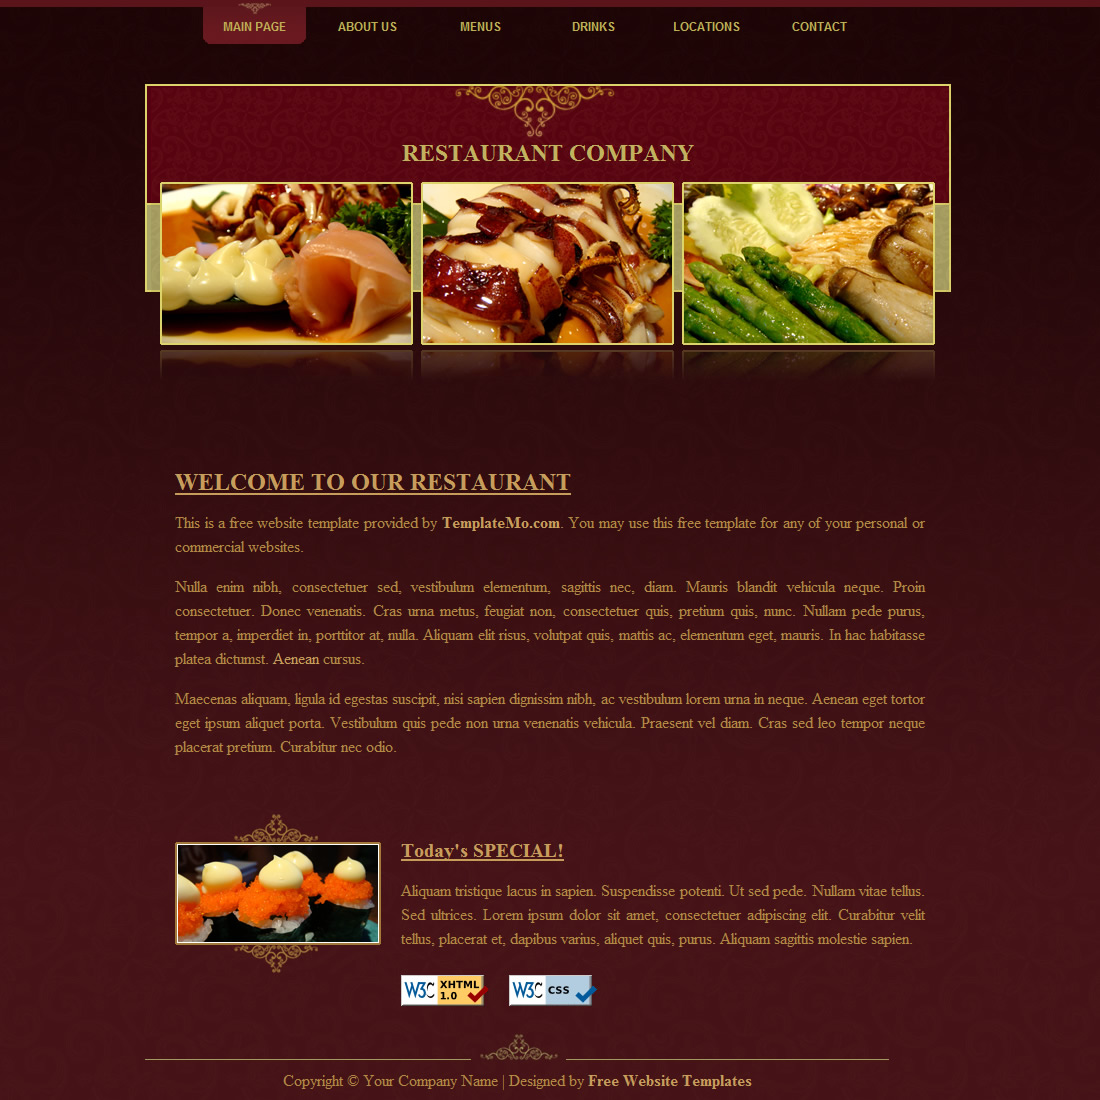 OnePage Website Templates